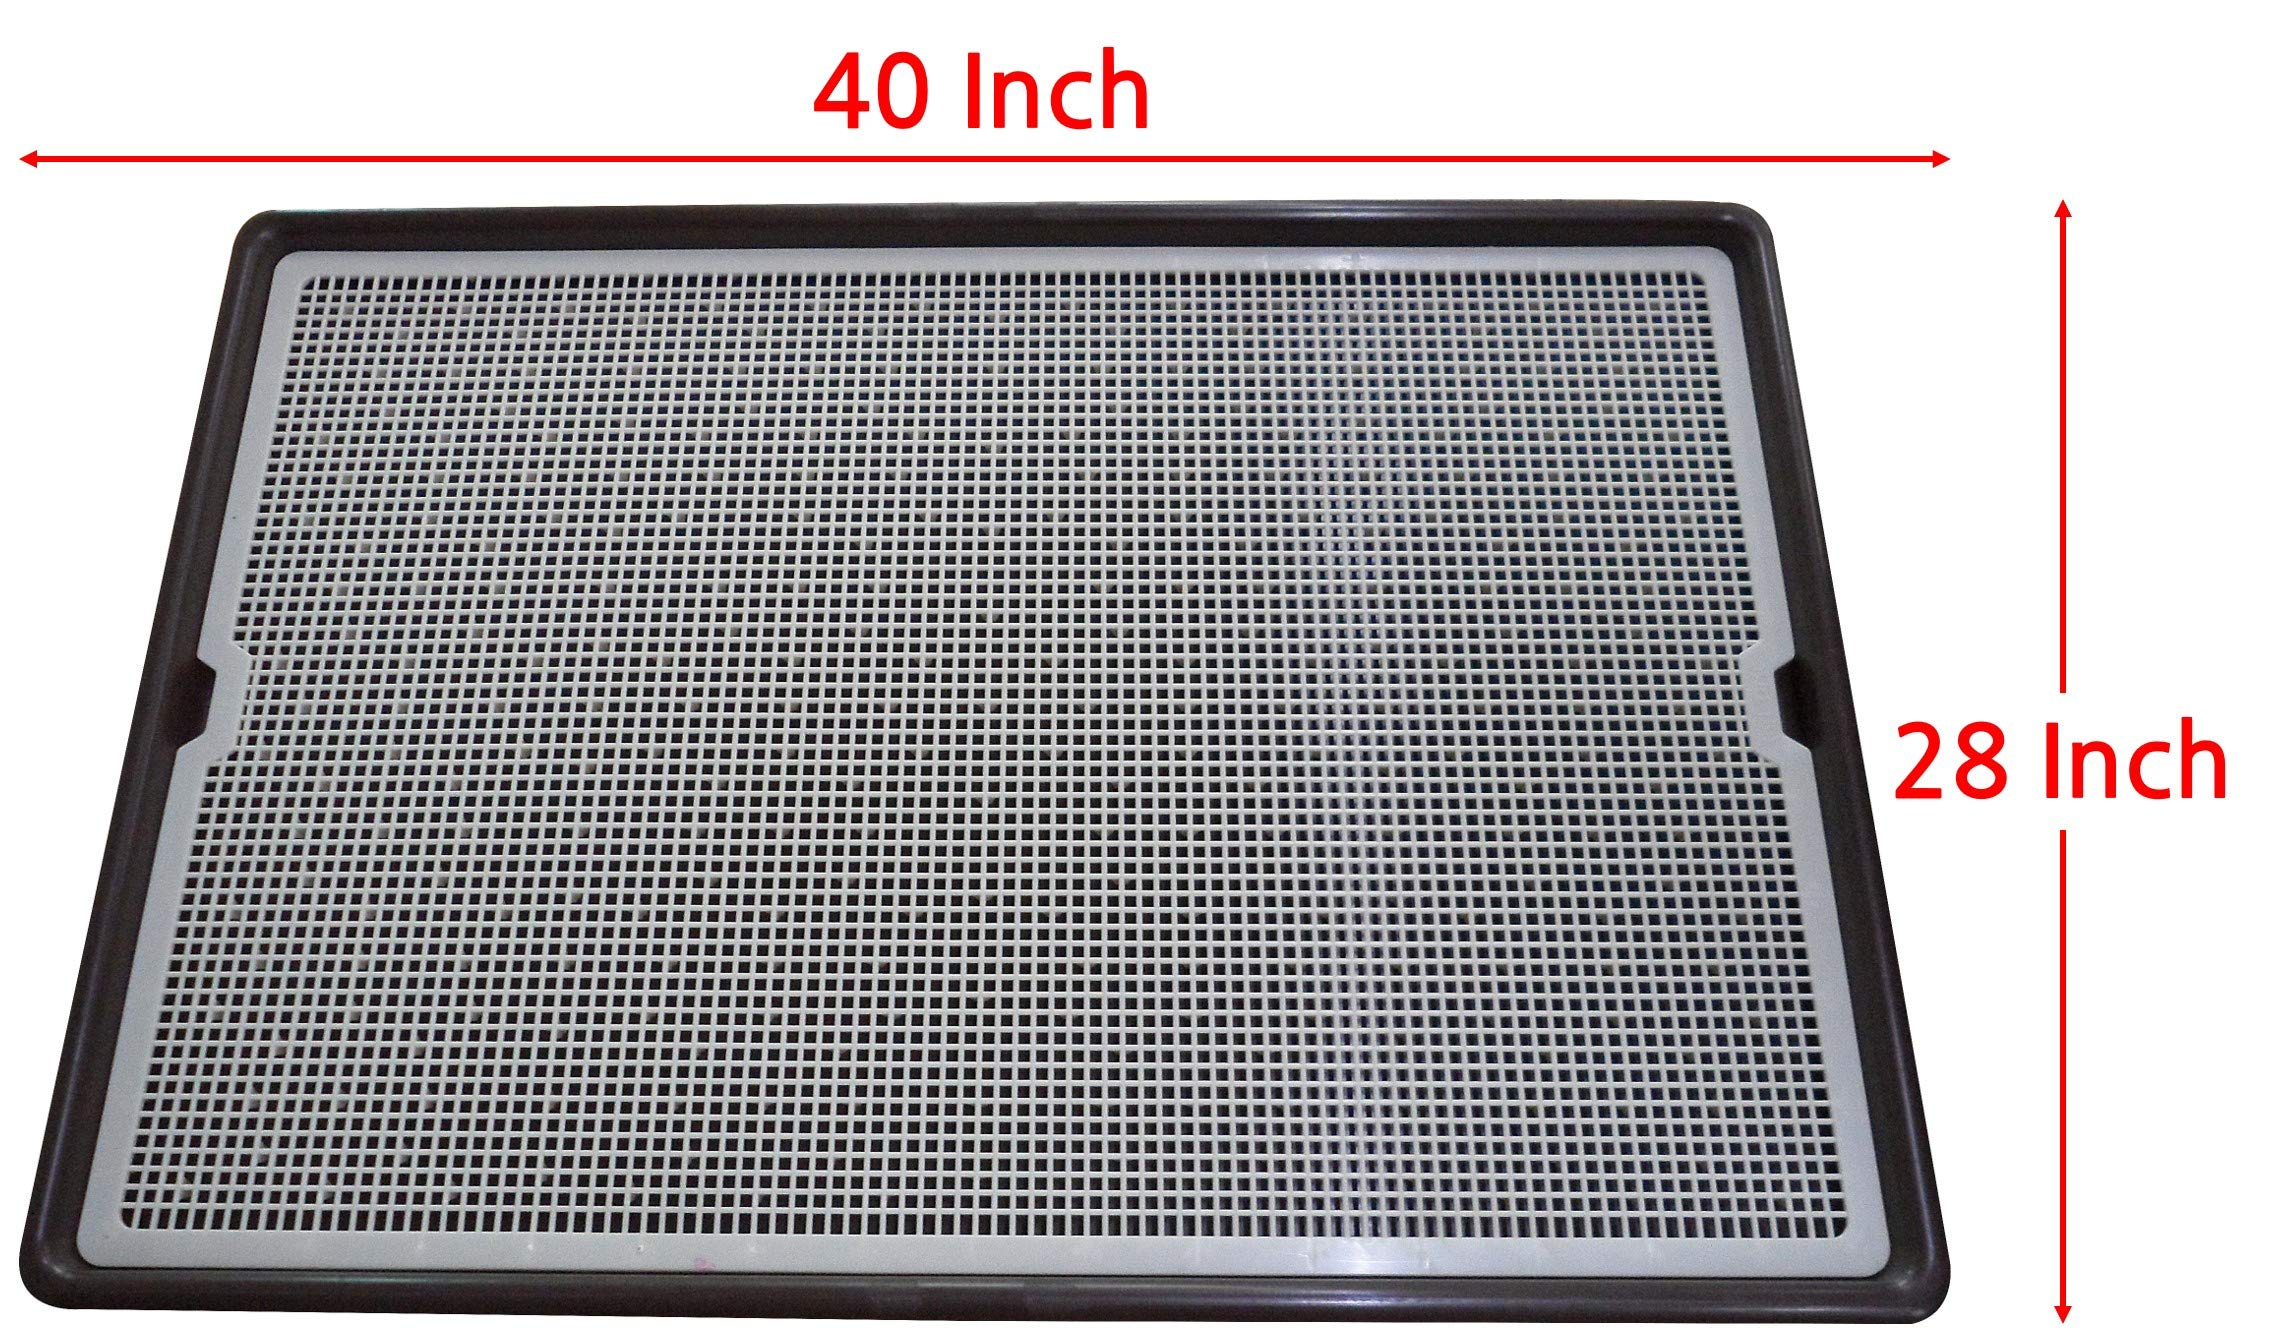 Pet Time Grand Dog Toilet Pet Dog Cat mesh Potty Large Big Huge Protect Floor Litter Training pad Holder 40'' X 28'' AMT-1100 by Pet Time